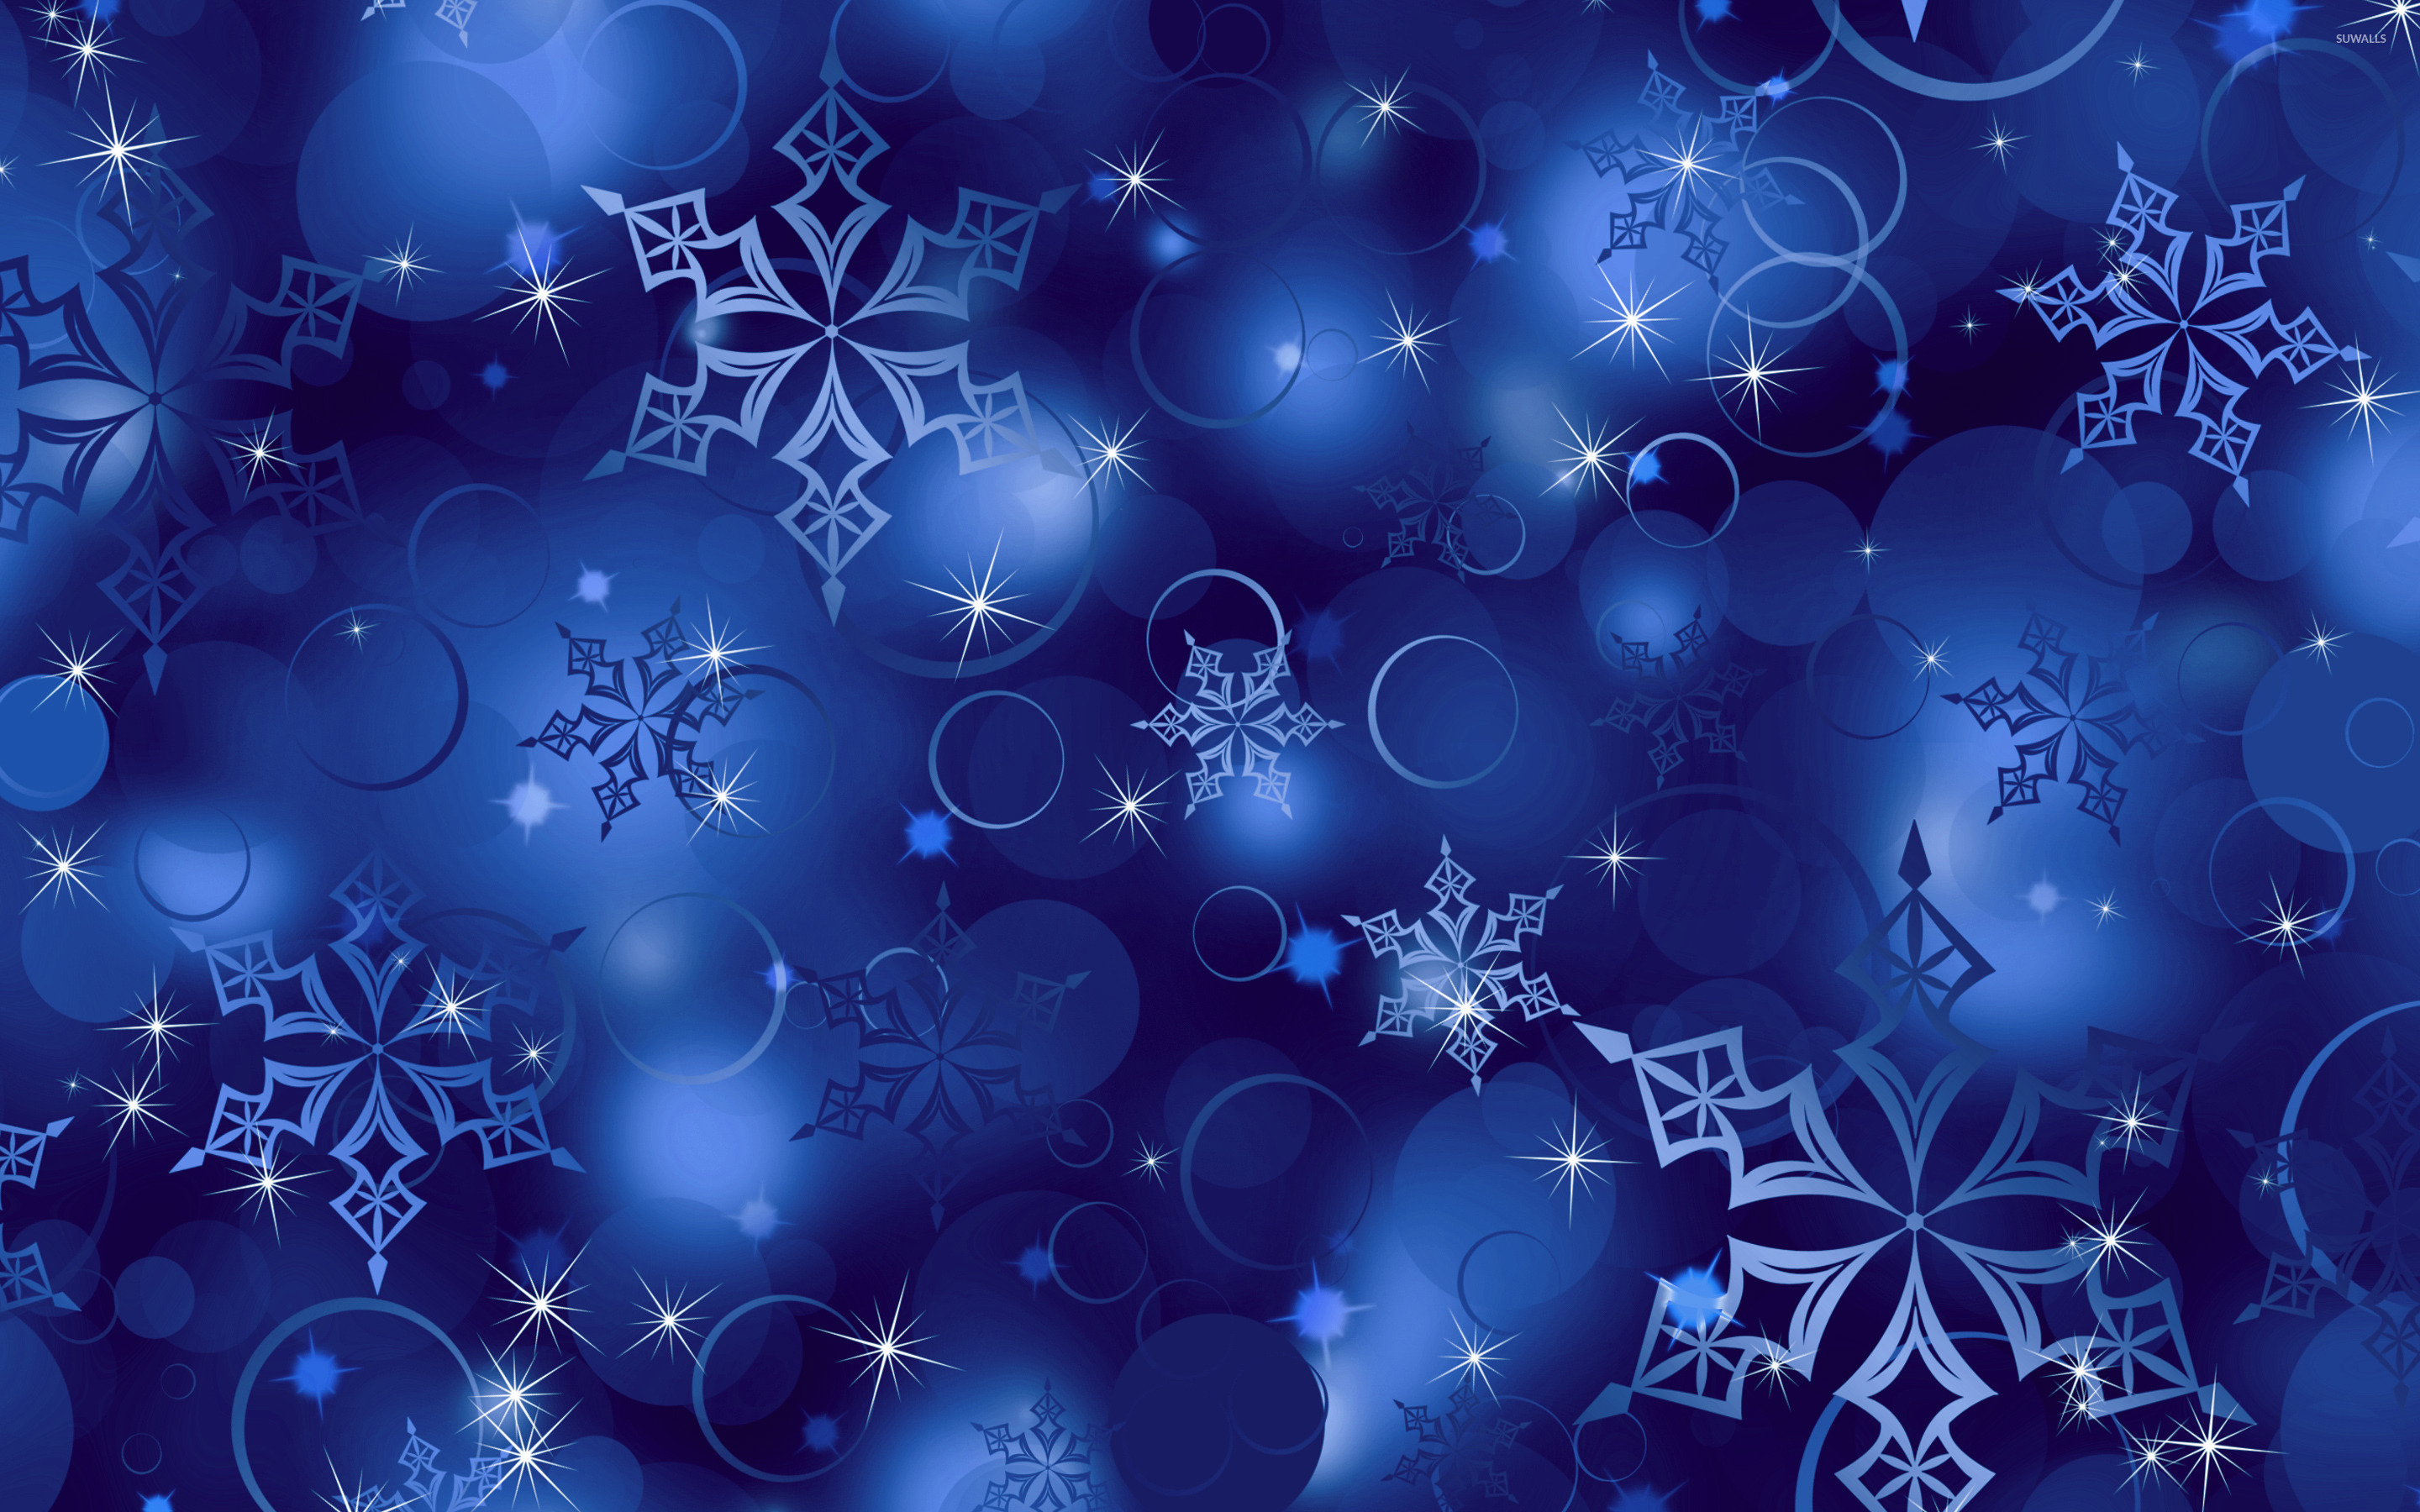 Falling Snow Animated Wallpaper Snowflakes 4 Wallpaper Digital Art Wallpapers 25755